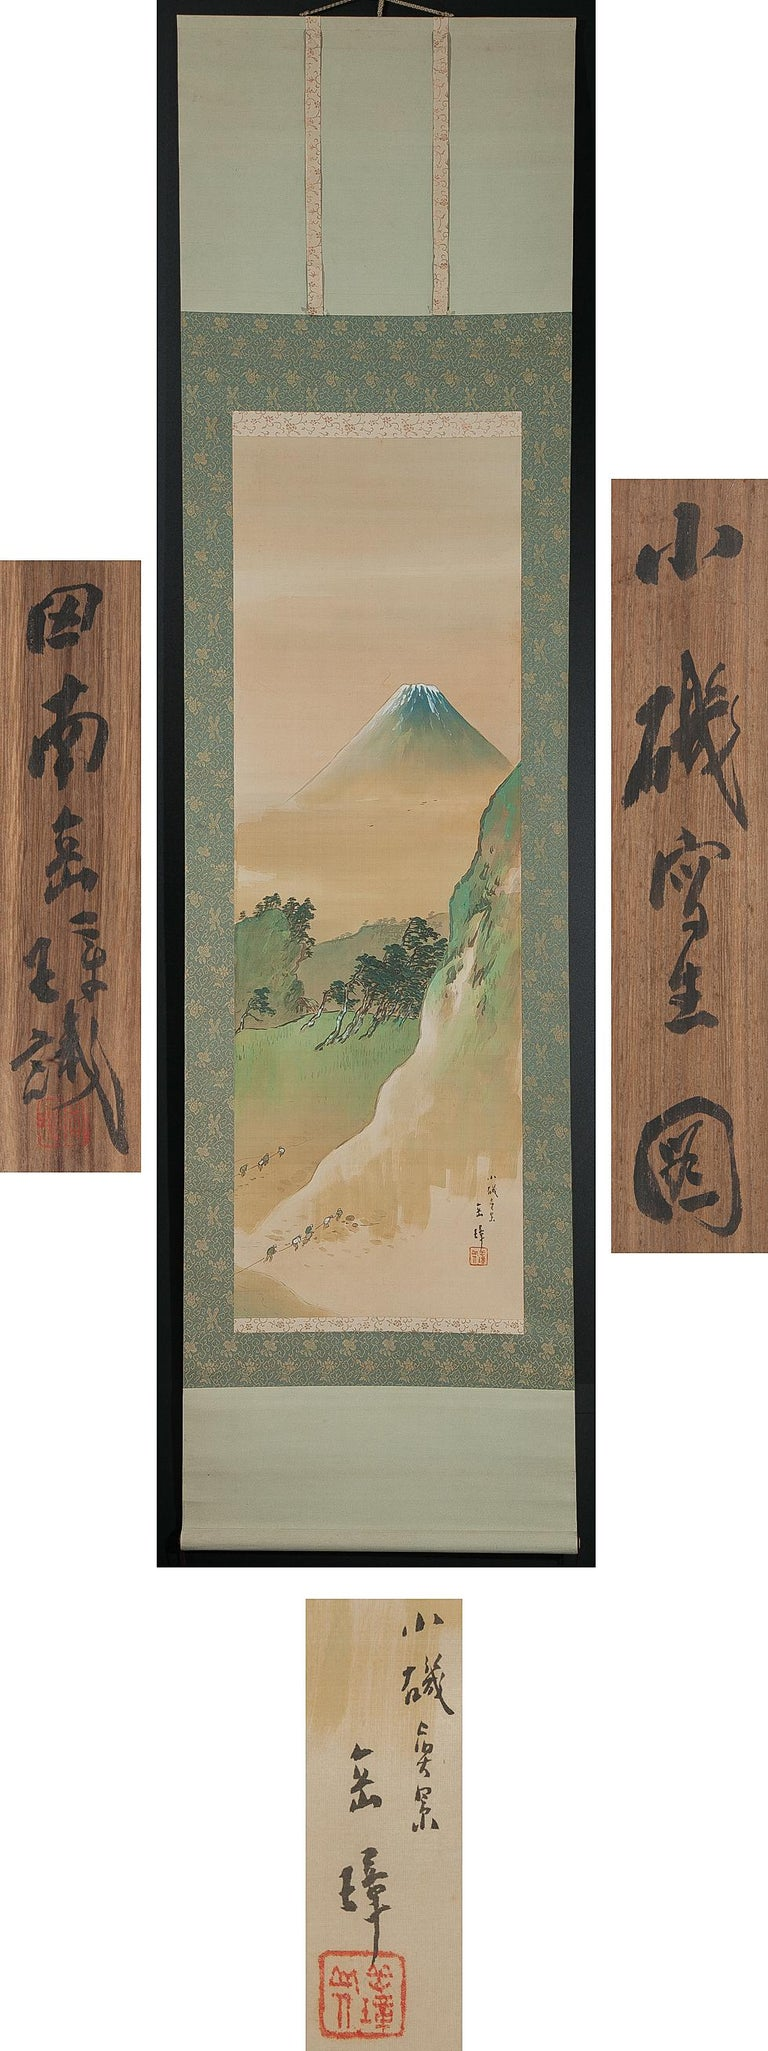 Title: ???? ??????? ?? ?? ?? ?? ?? ??  Condition: State is good, thin stains. Size Axis ... vertical 216.5cm next to 56.3cm Painting ... vertical 126.3cm horizontal 41.5cm ? differs slightly in size.    Please check for more information in